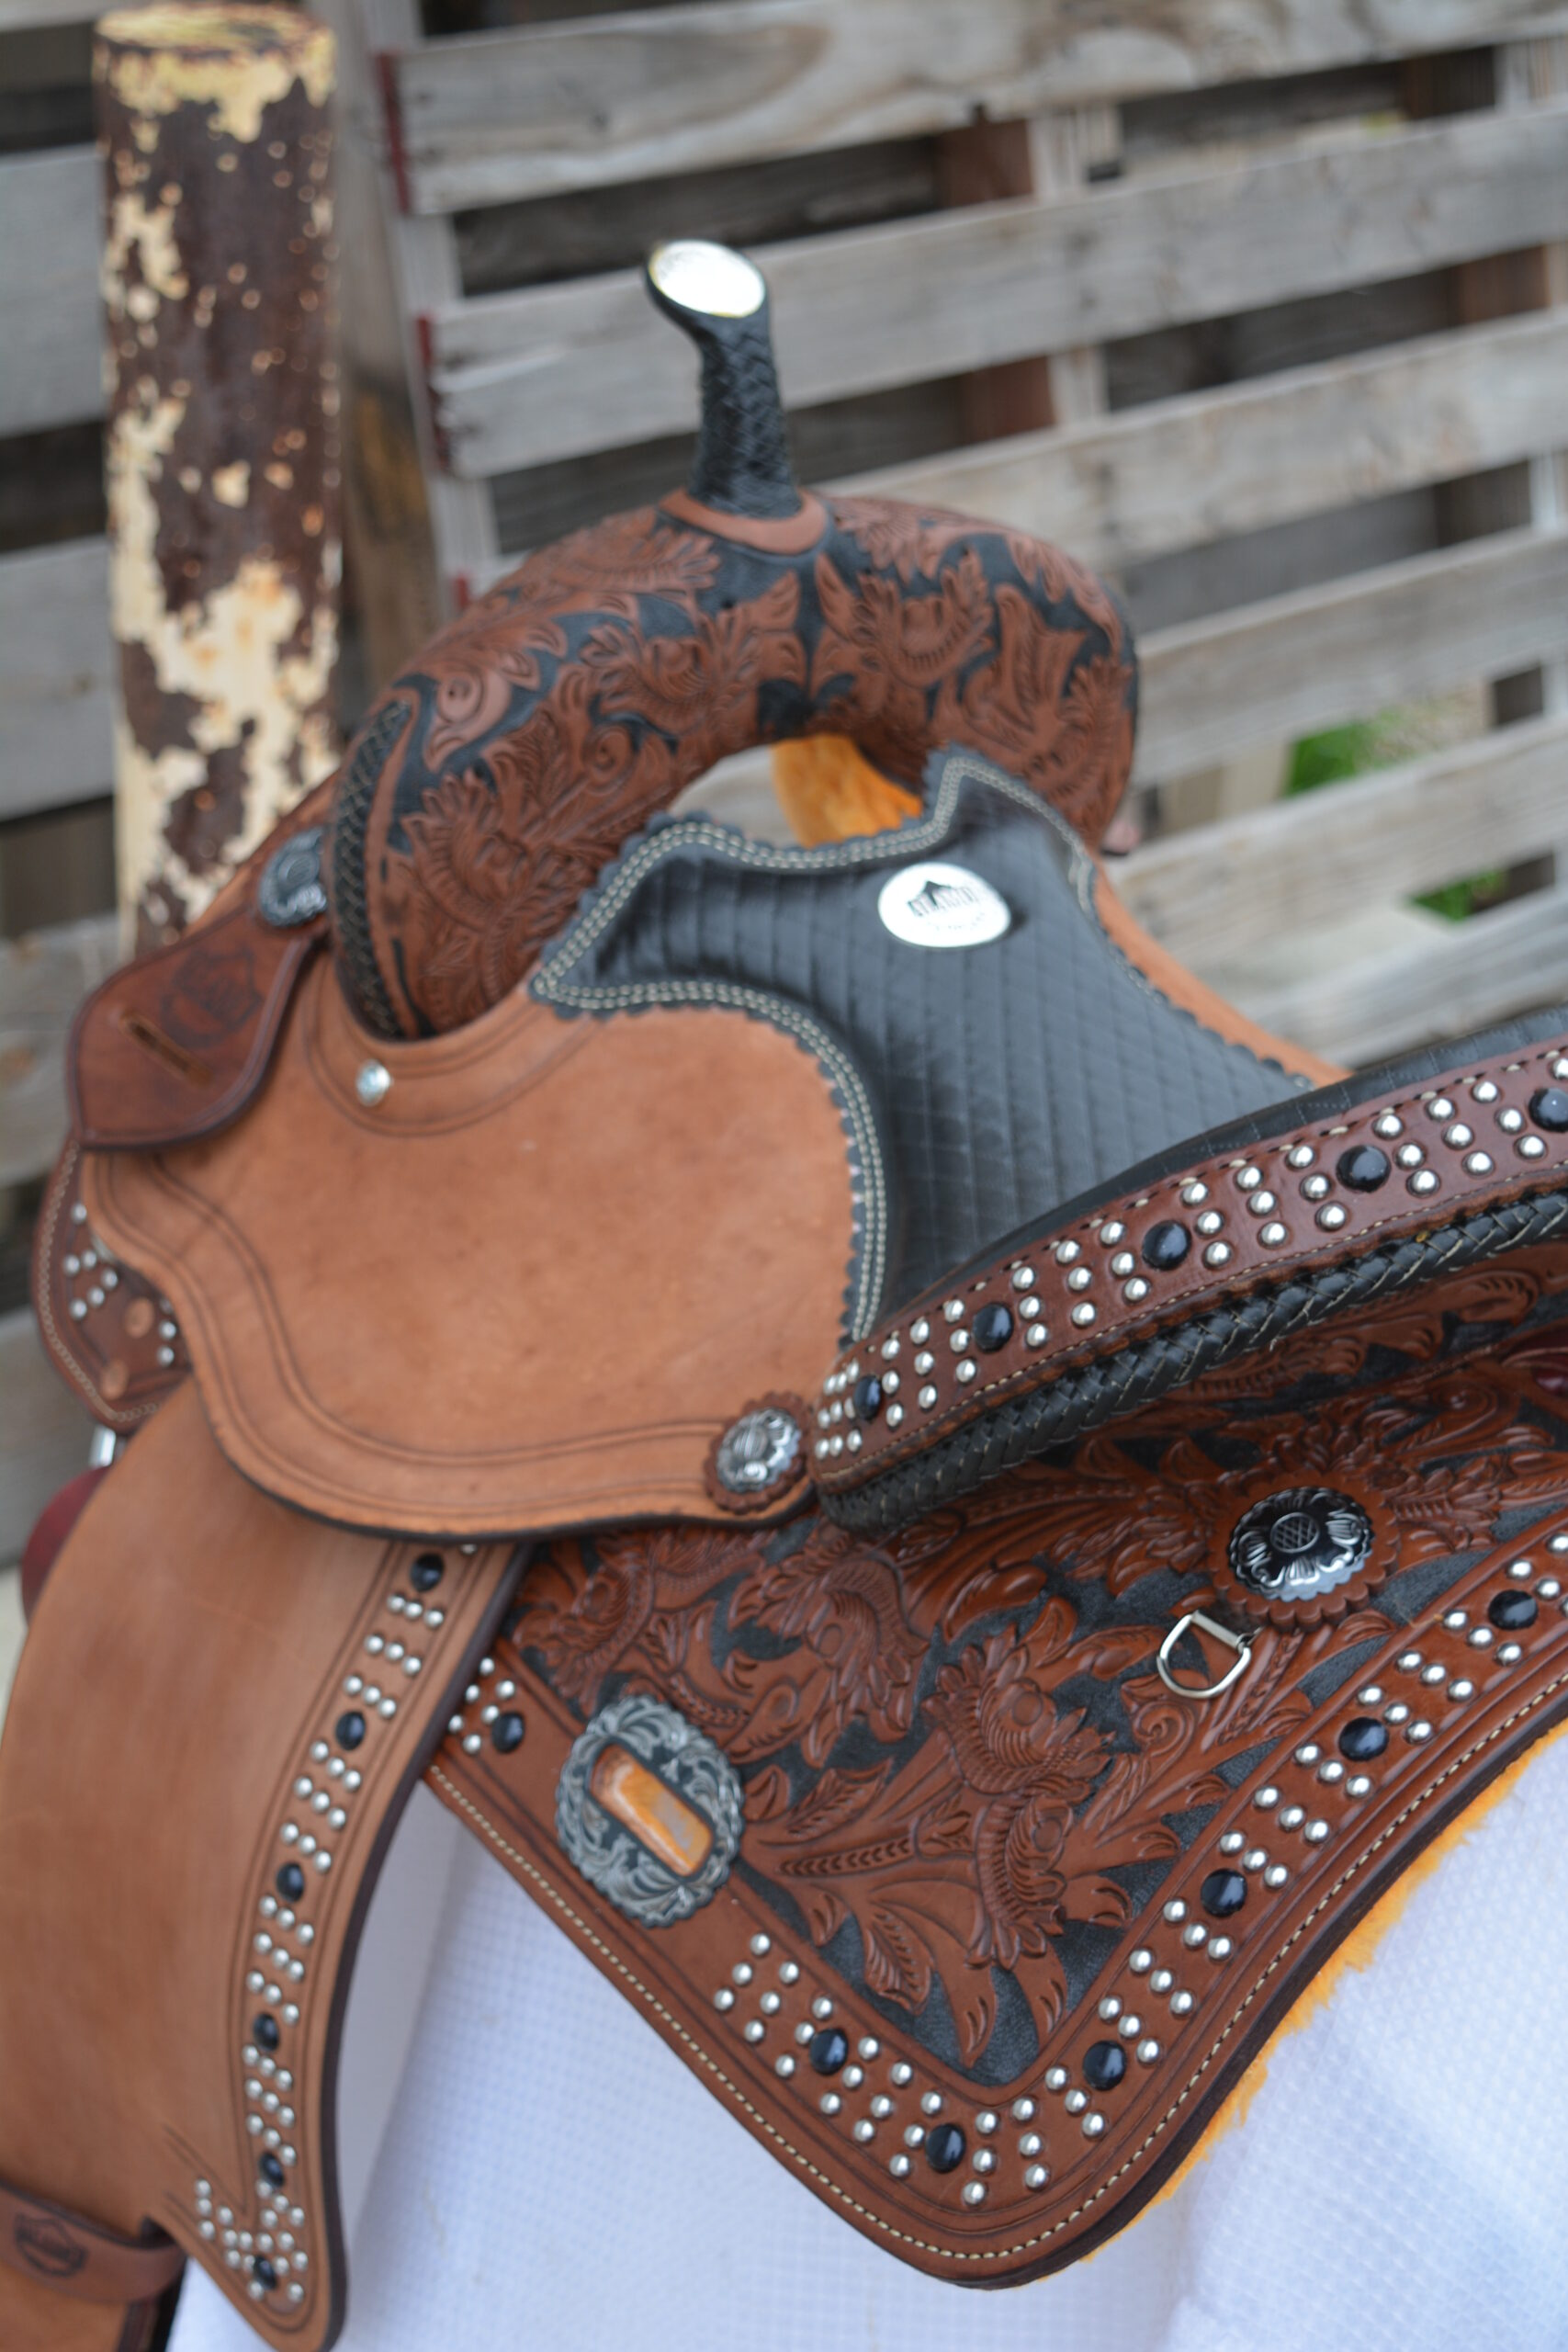 1517 BARREL SADDLE